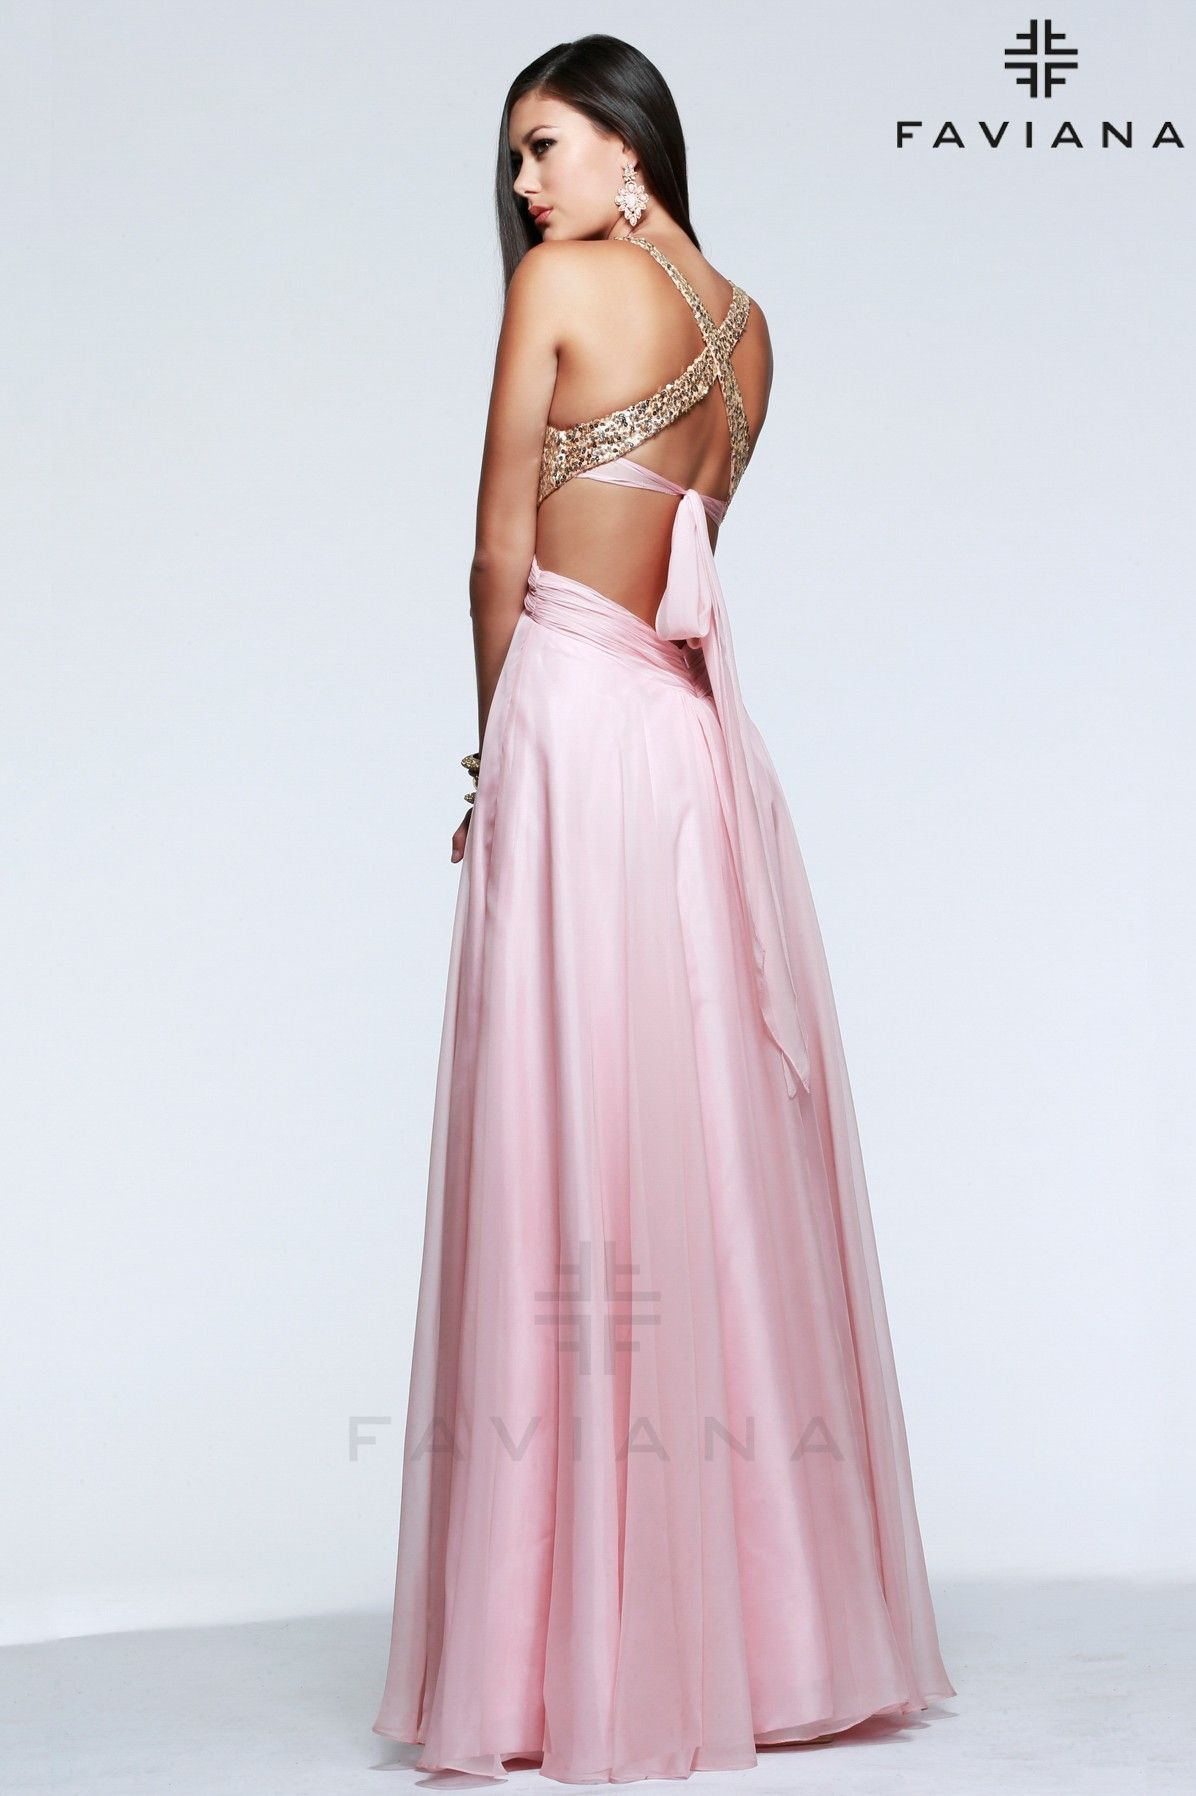 Faviana chiffon prom dress with sparkle bodice and criss-cross tie ...